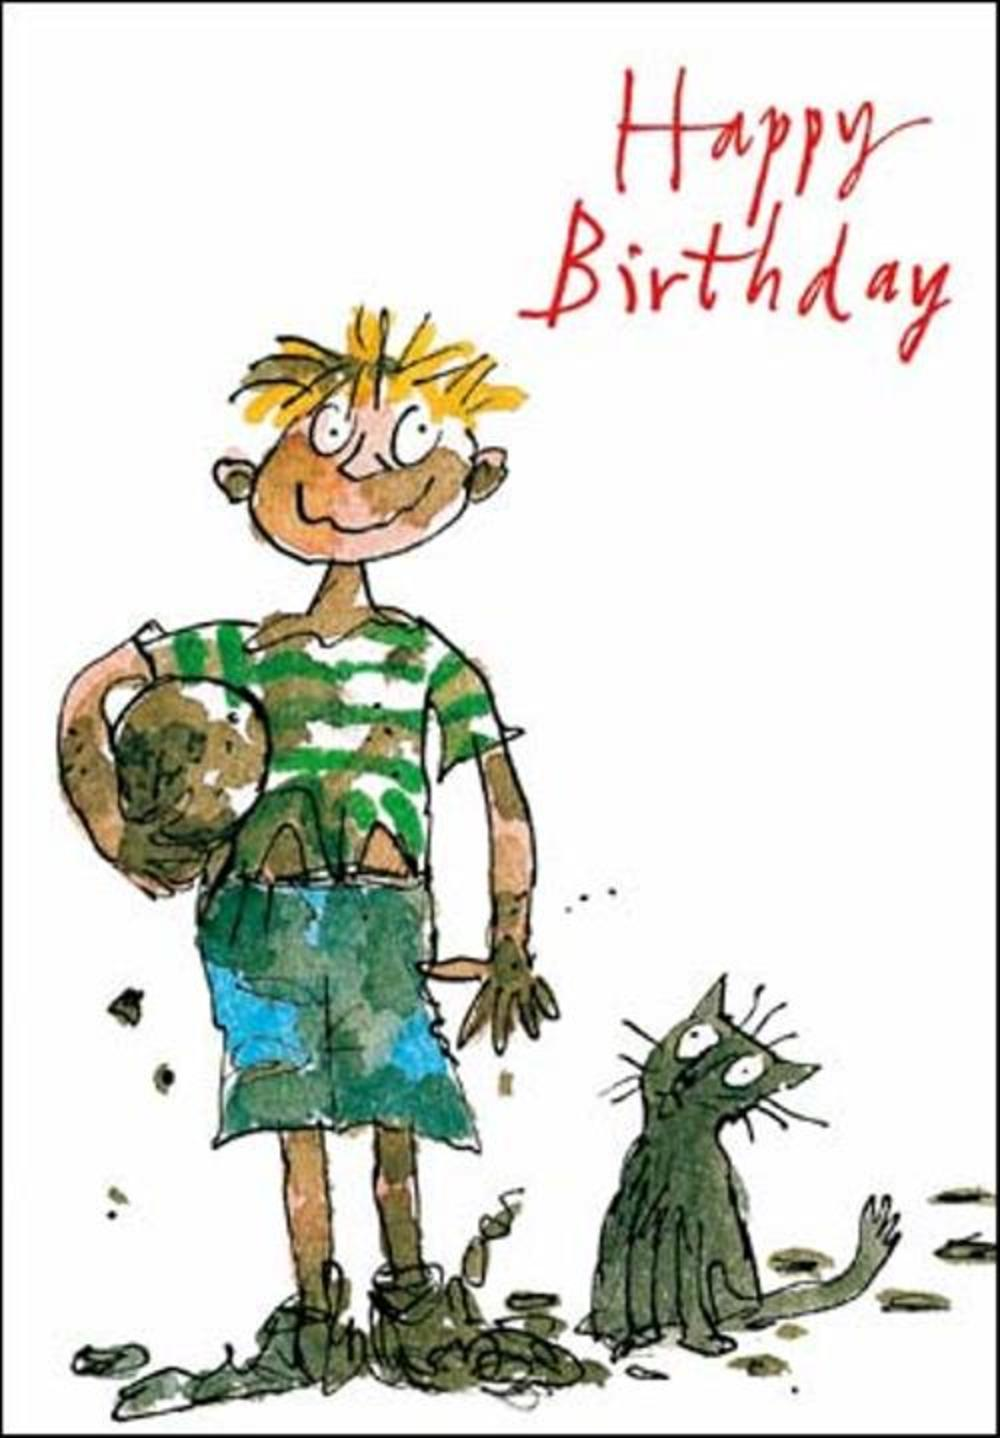 Quentin Blake Boys Birthday Greeting Card